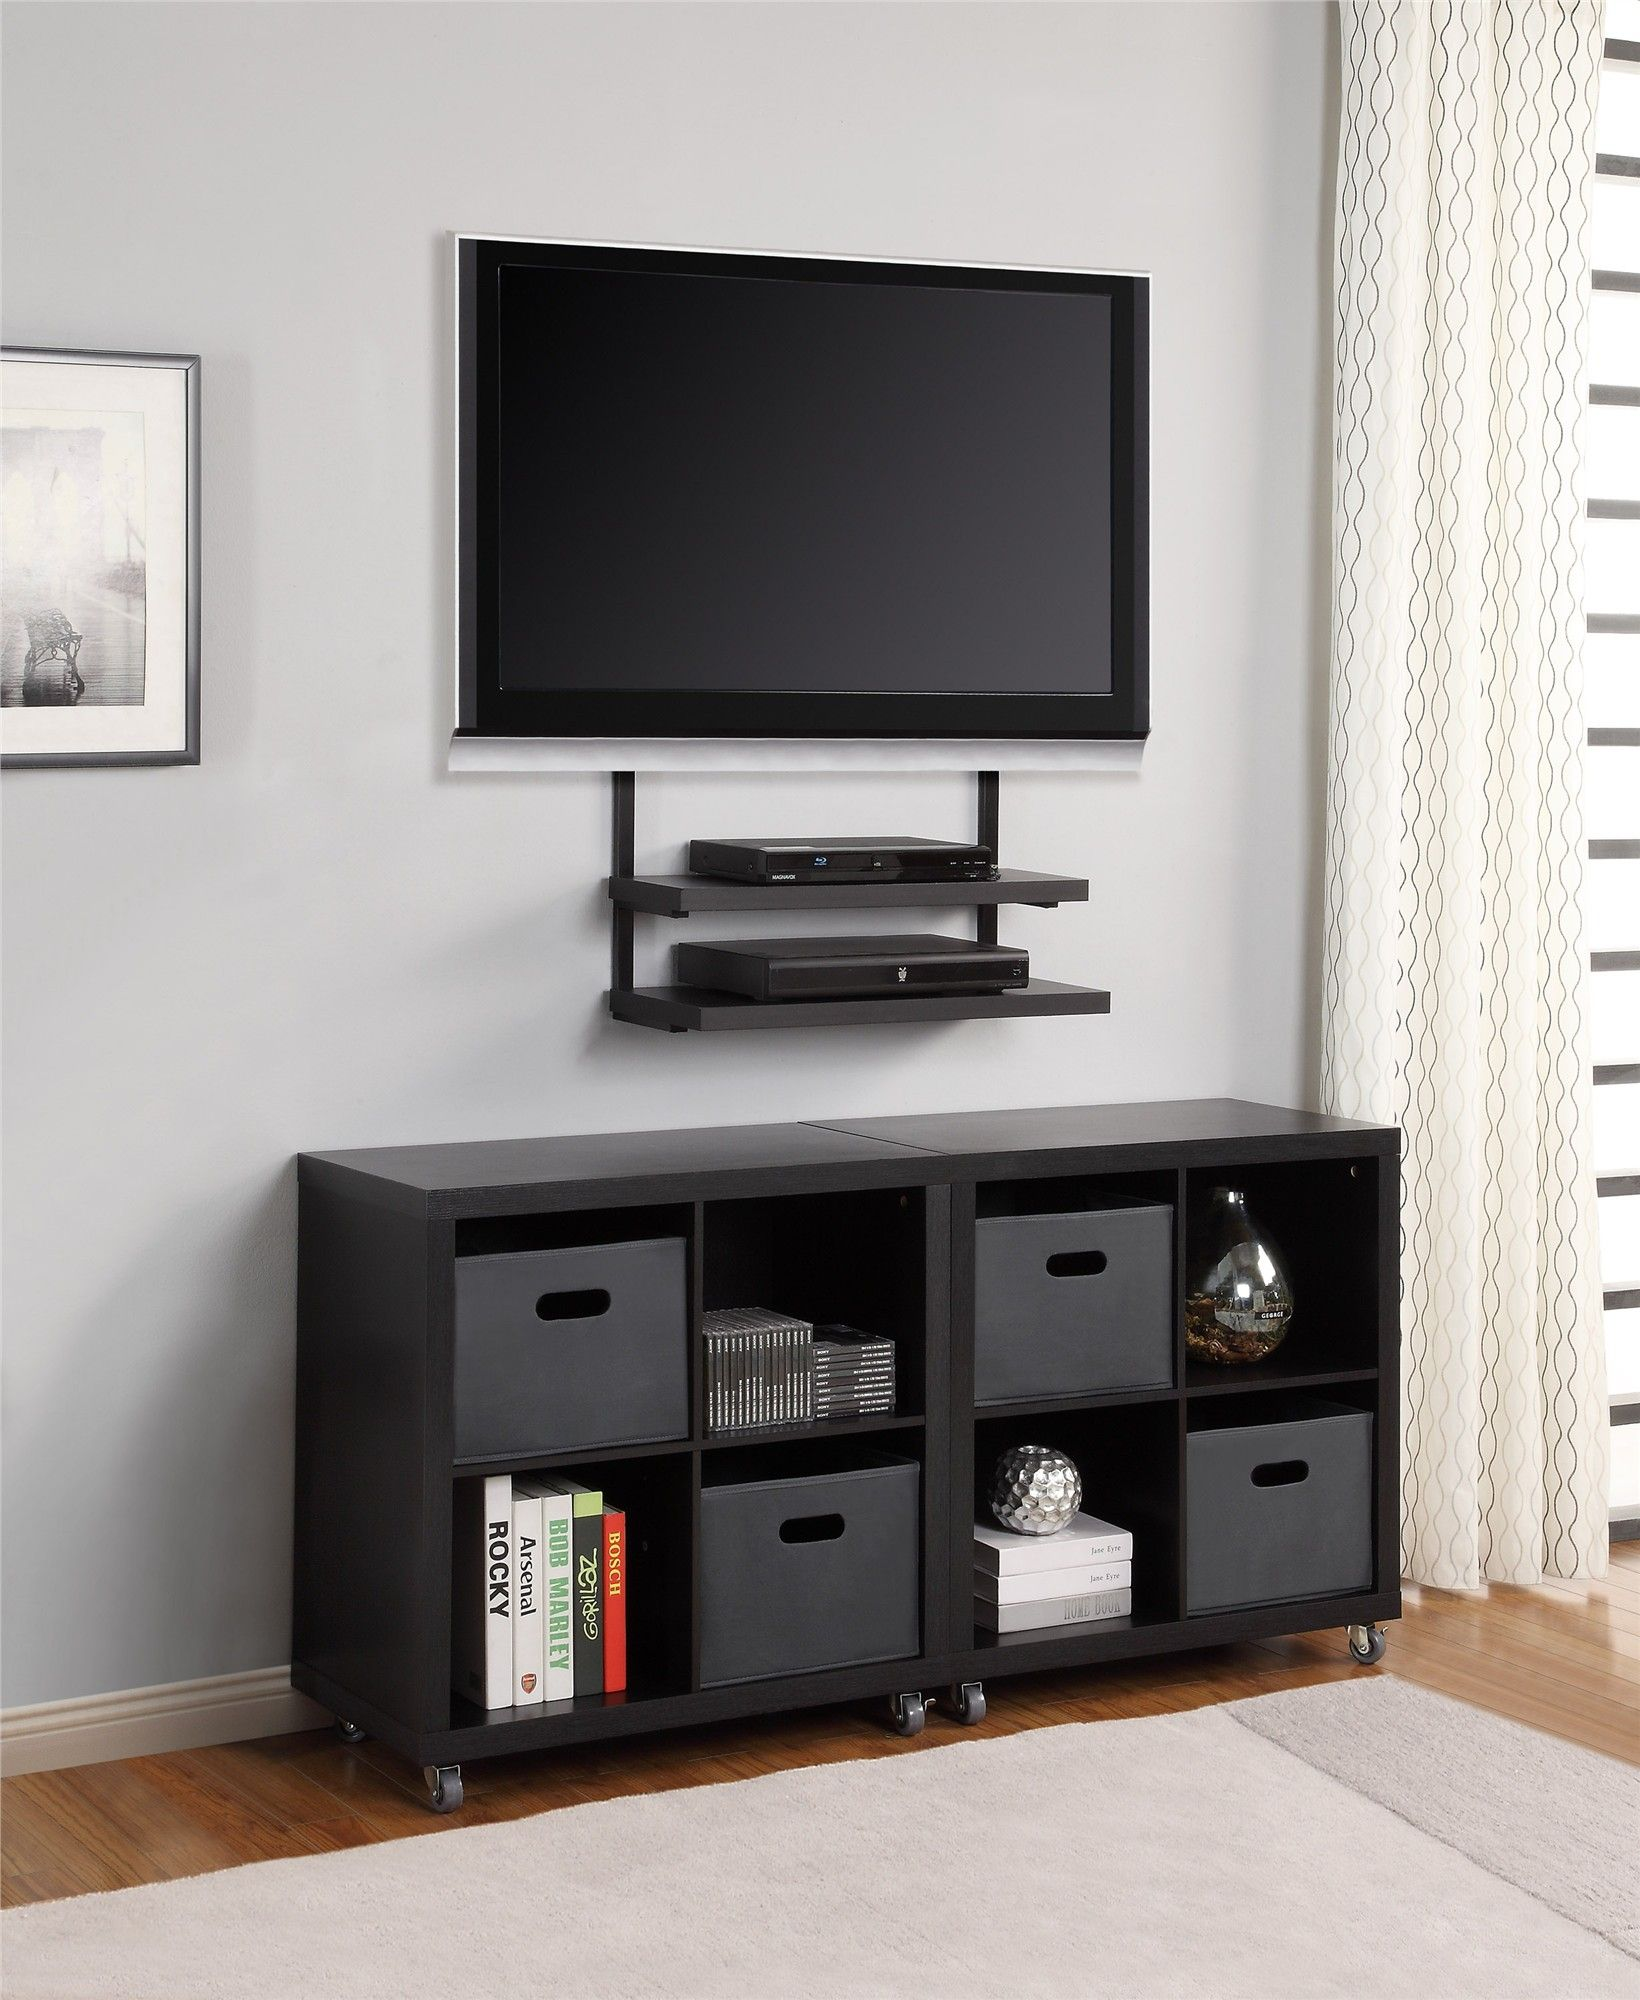 shelving under tv room ideas pinterest shelving workout